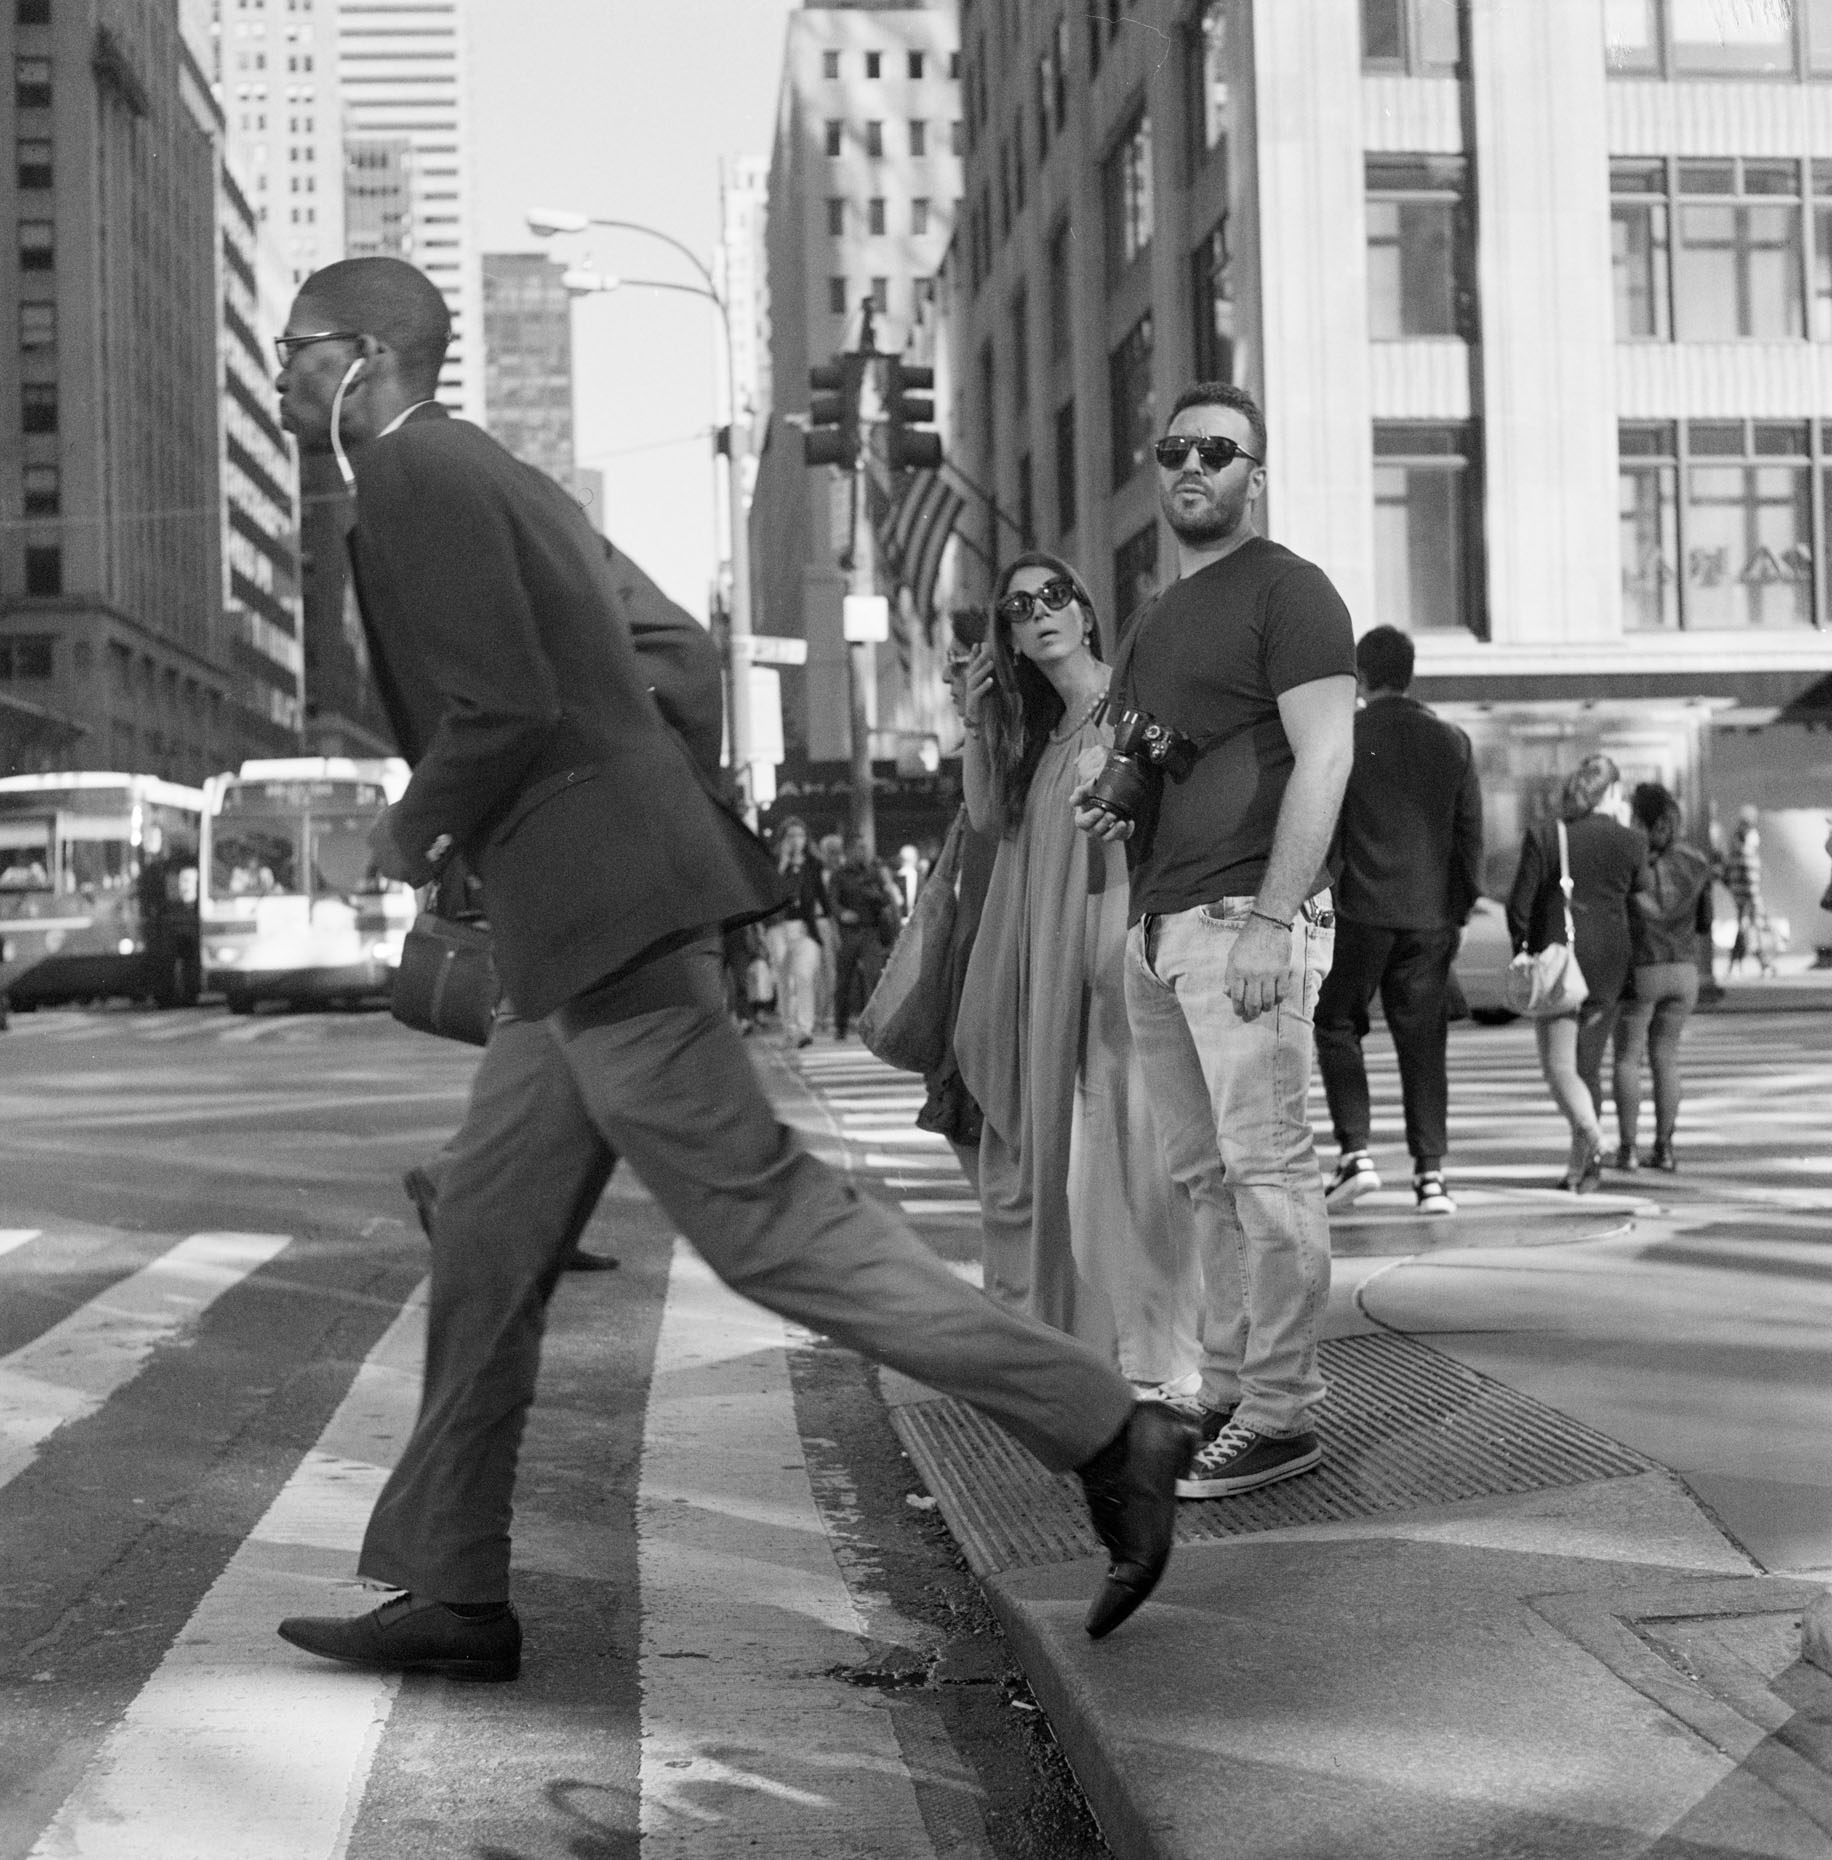 A tall man runs across busy New York Street in Midtown Manhattan, New York City.